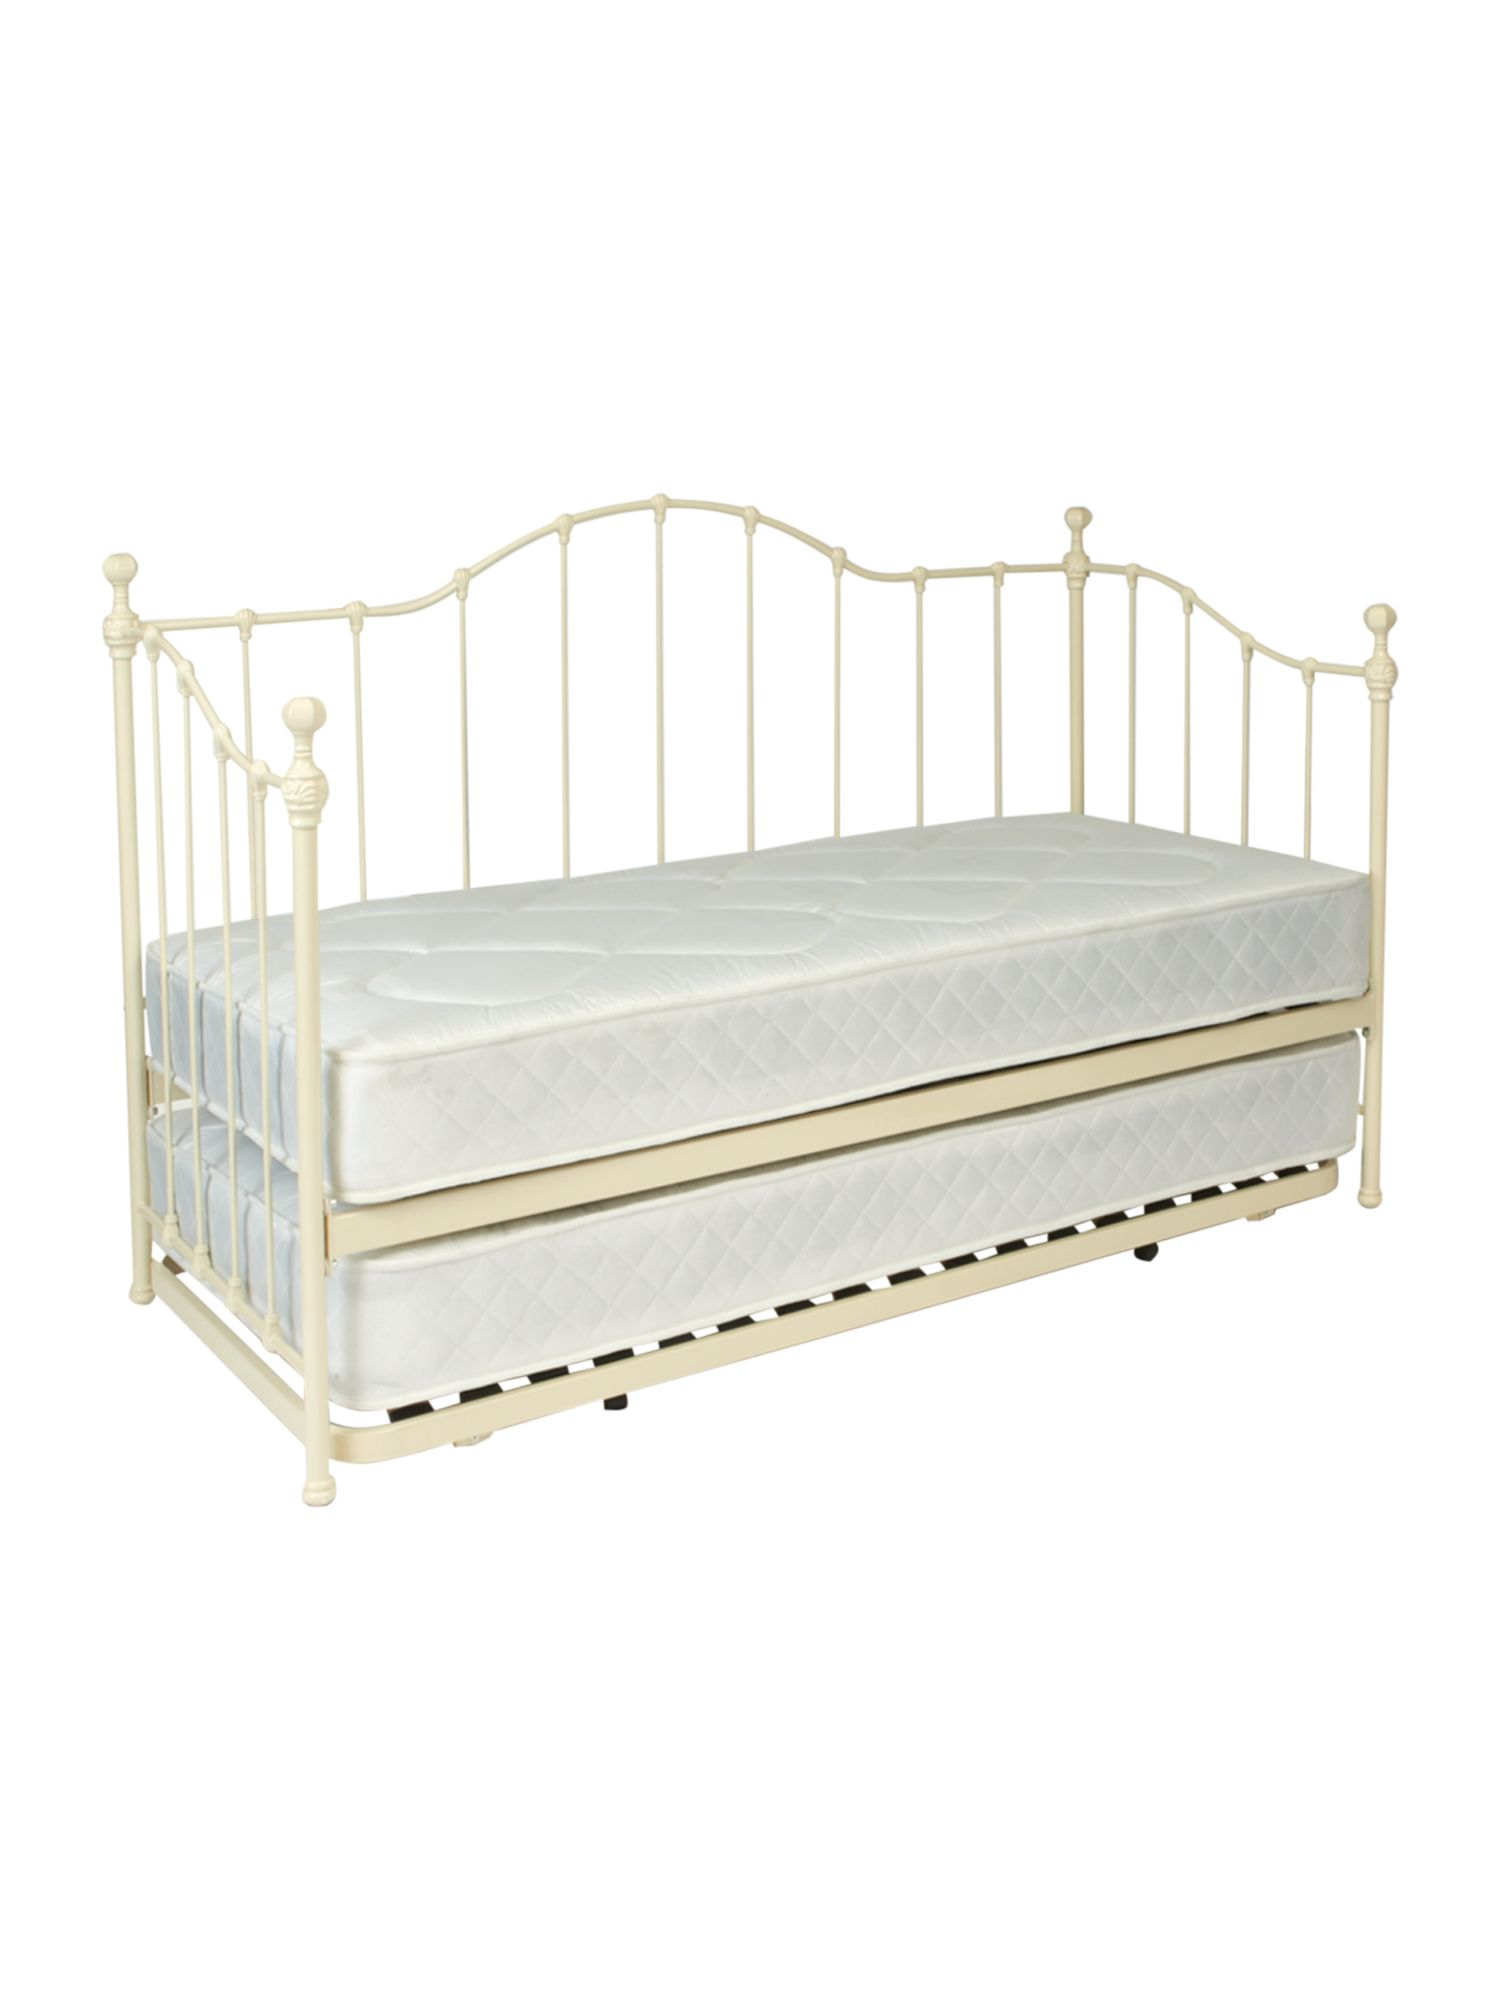 Iris day and guest bed range